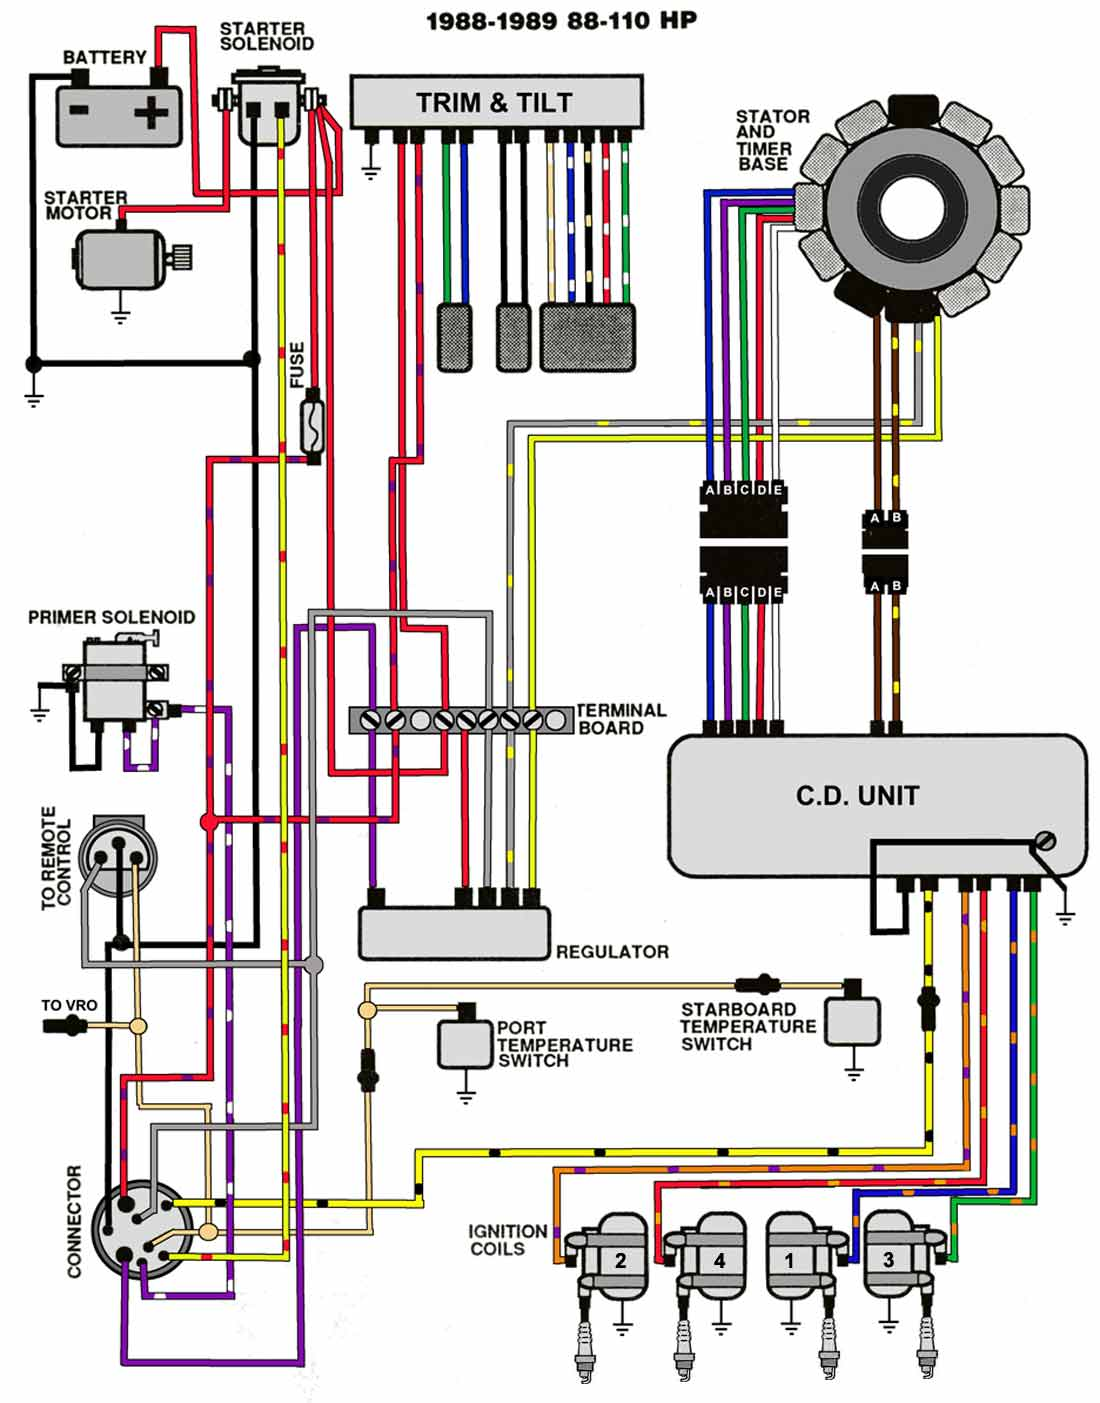 2012 Malibu Fuse Box Diagram Wiring Library 2011 Mastertech Marine Evinrude Johnson Outboard Diagrams Chevy Lt 2010